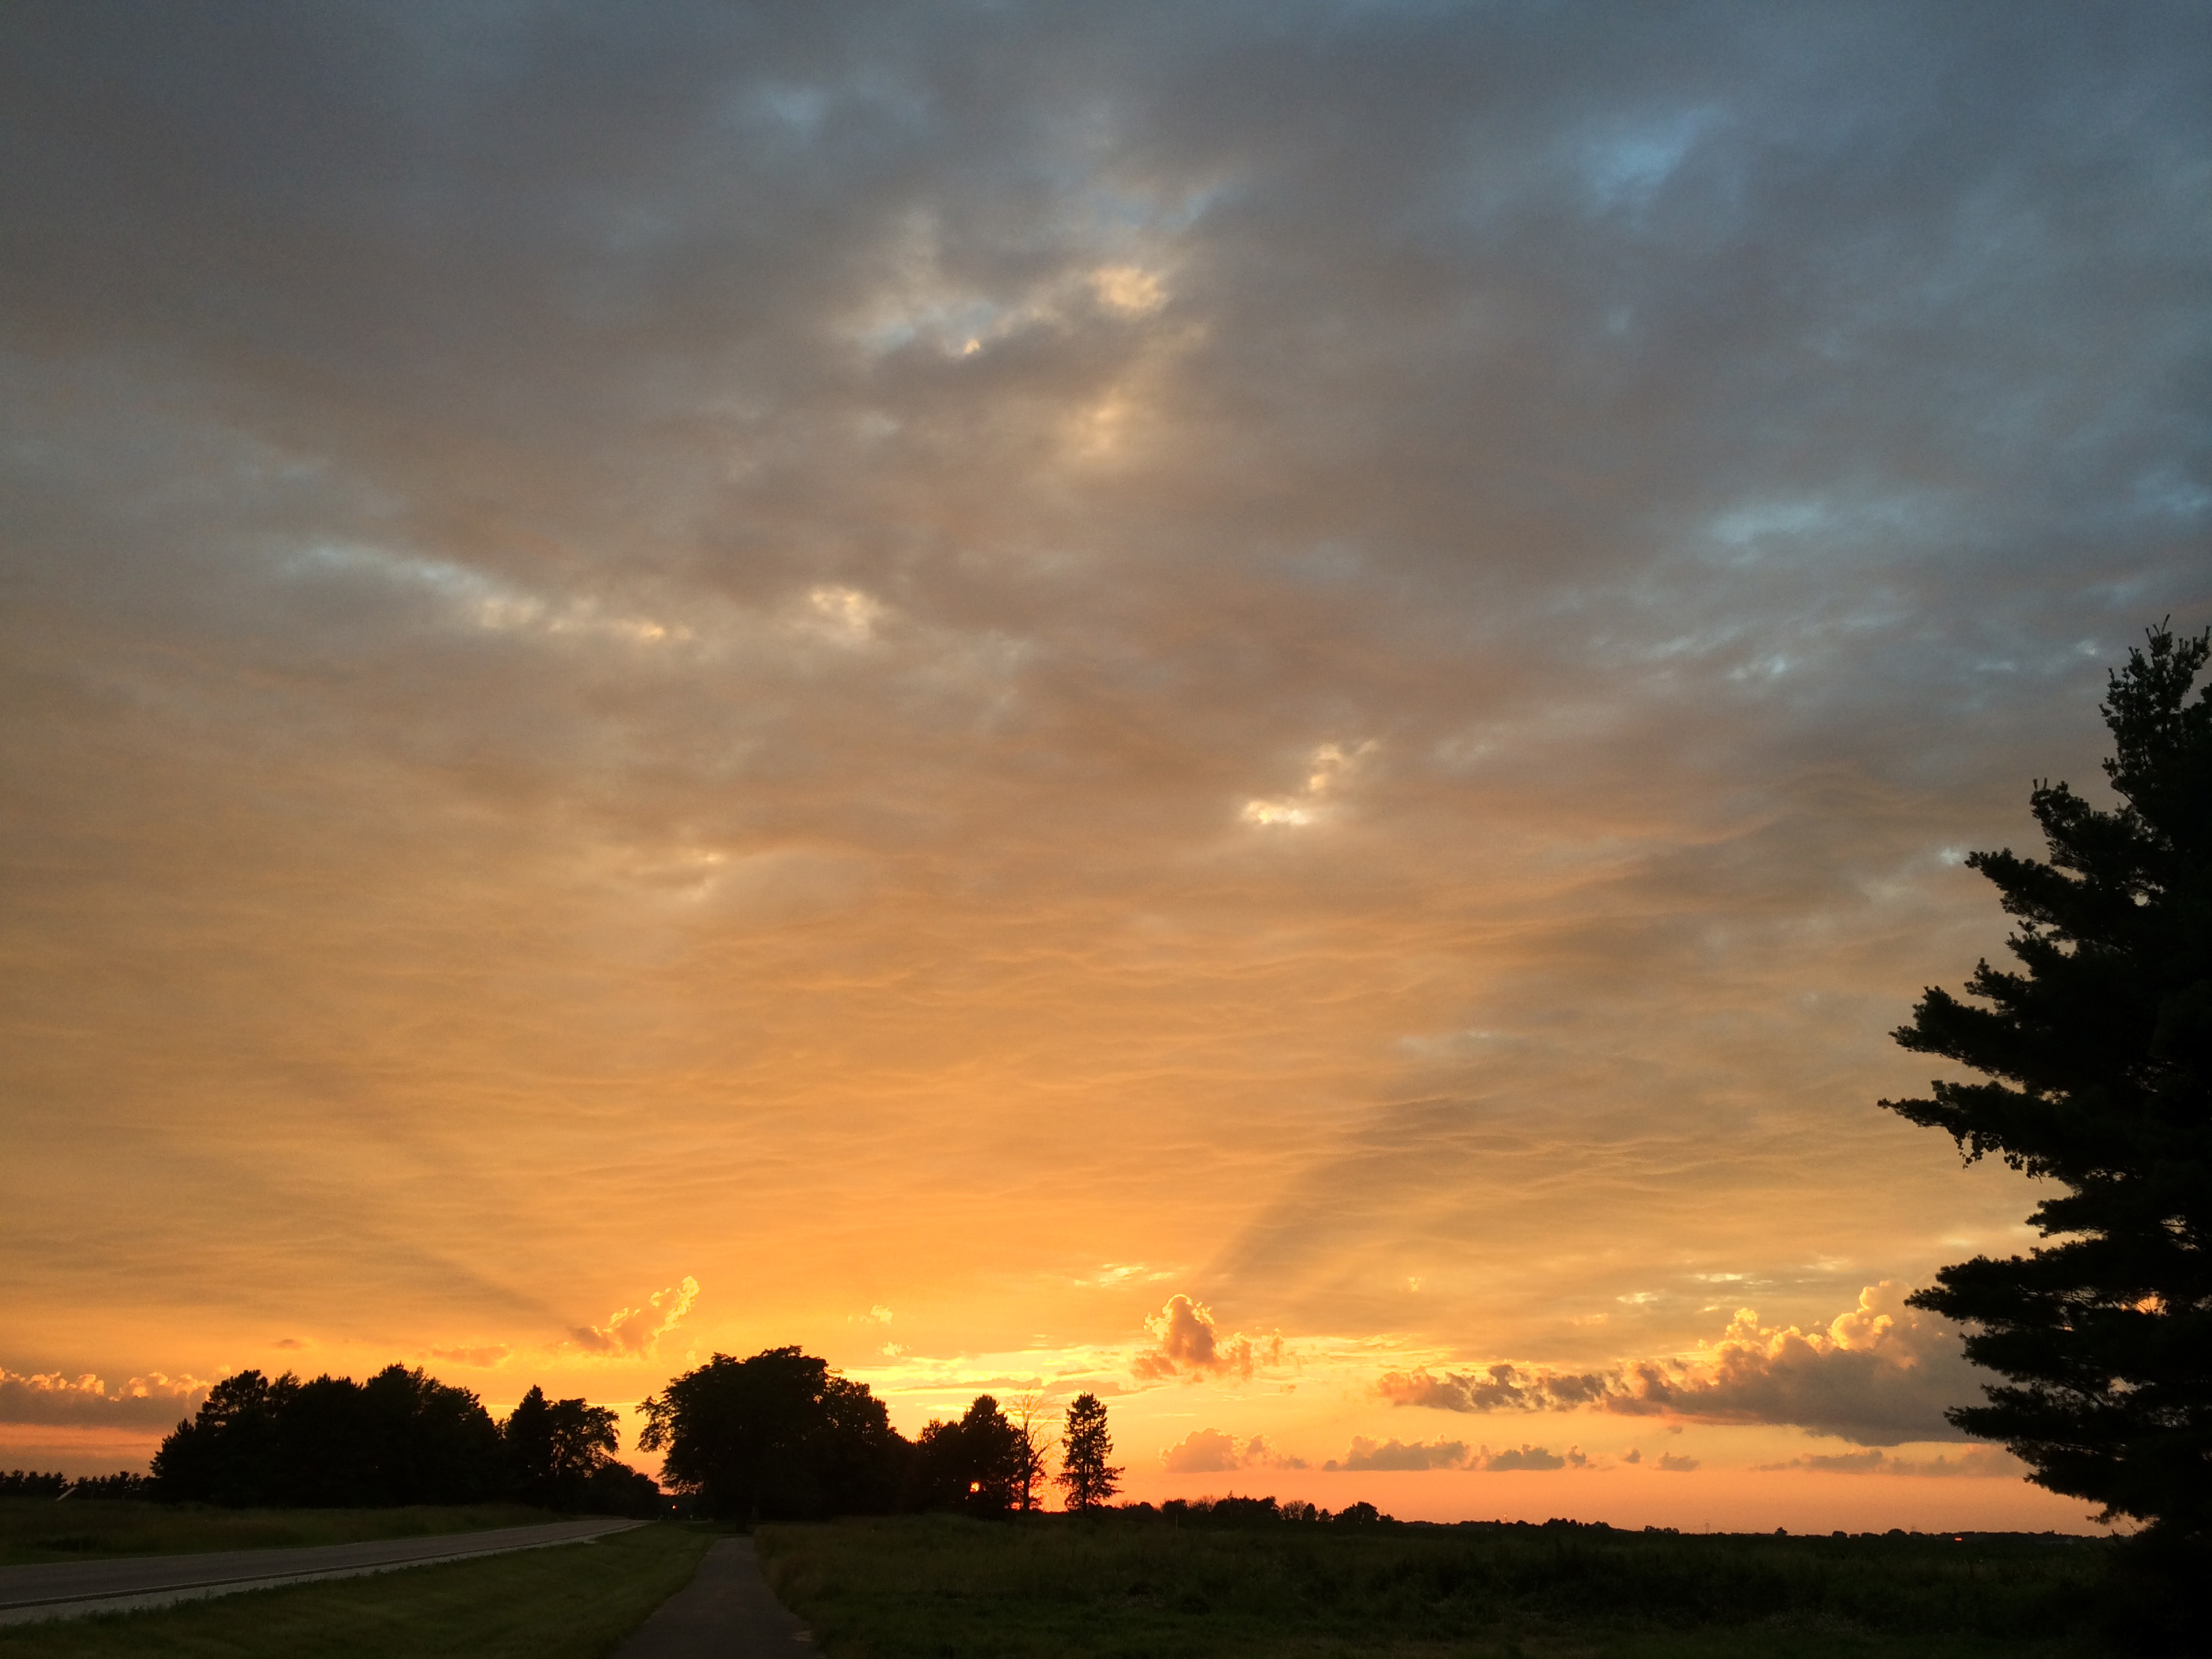 A gorgeous sunset, photographed just west of the Village, illuminates the ceiling of clouds. Photo: Manbir Kaur